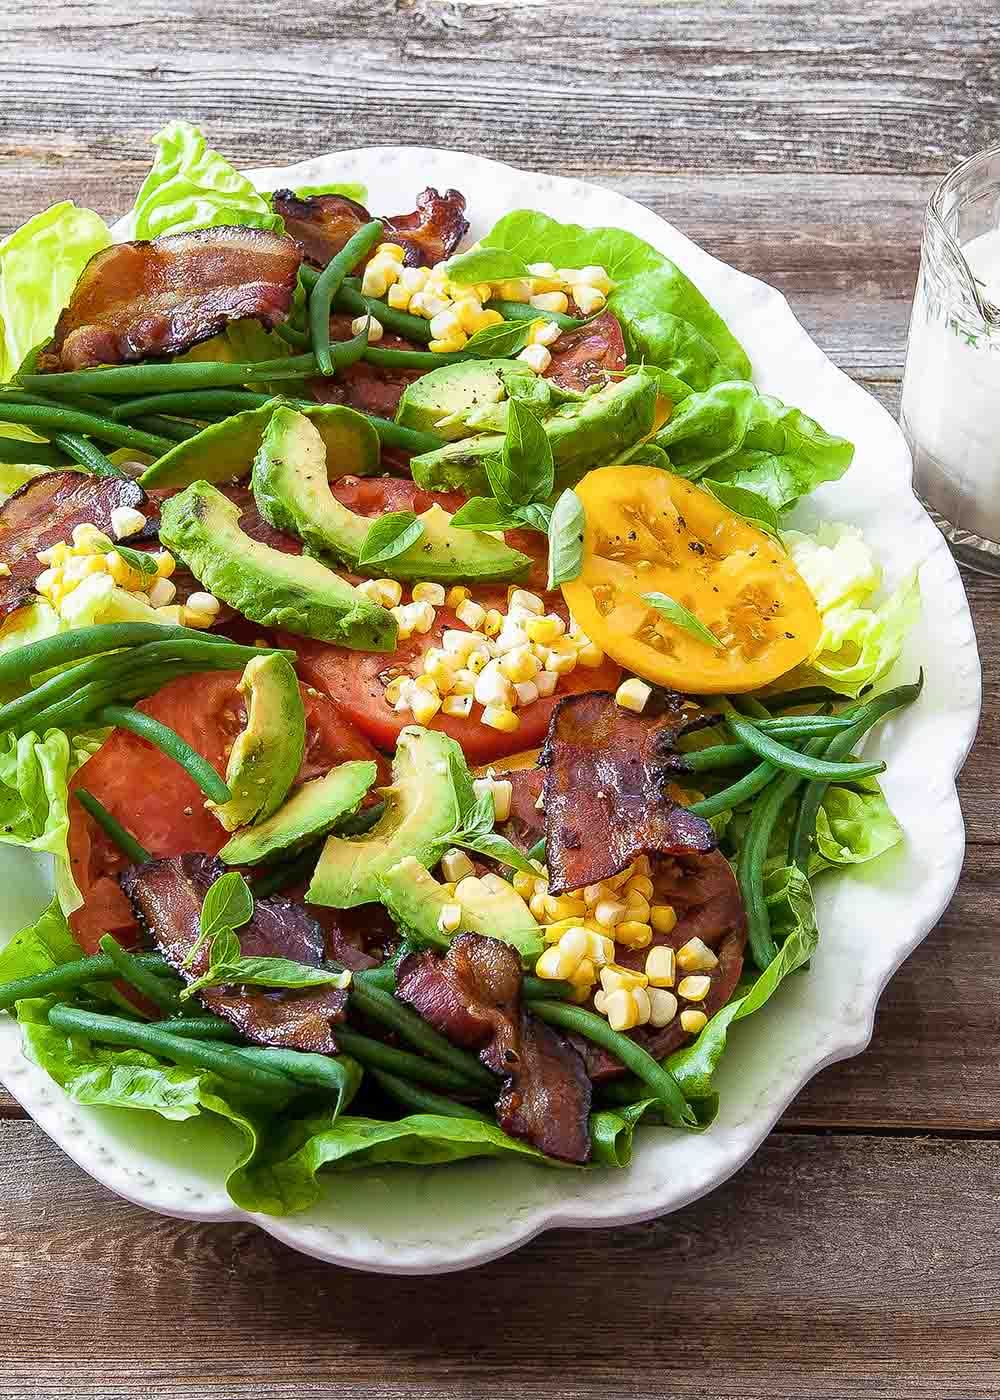 Blt Salad With Buttermilk Dressing Recipe Blt Salad Dinner